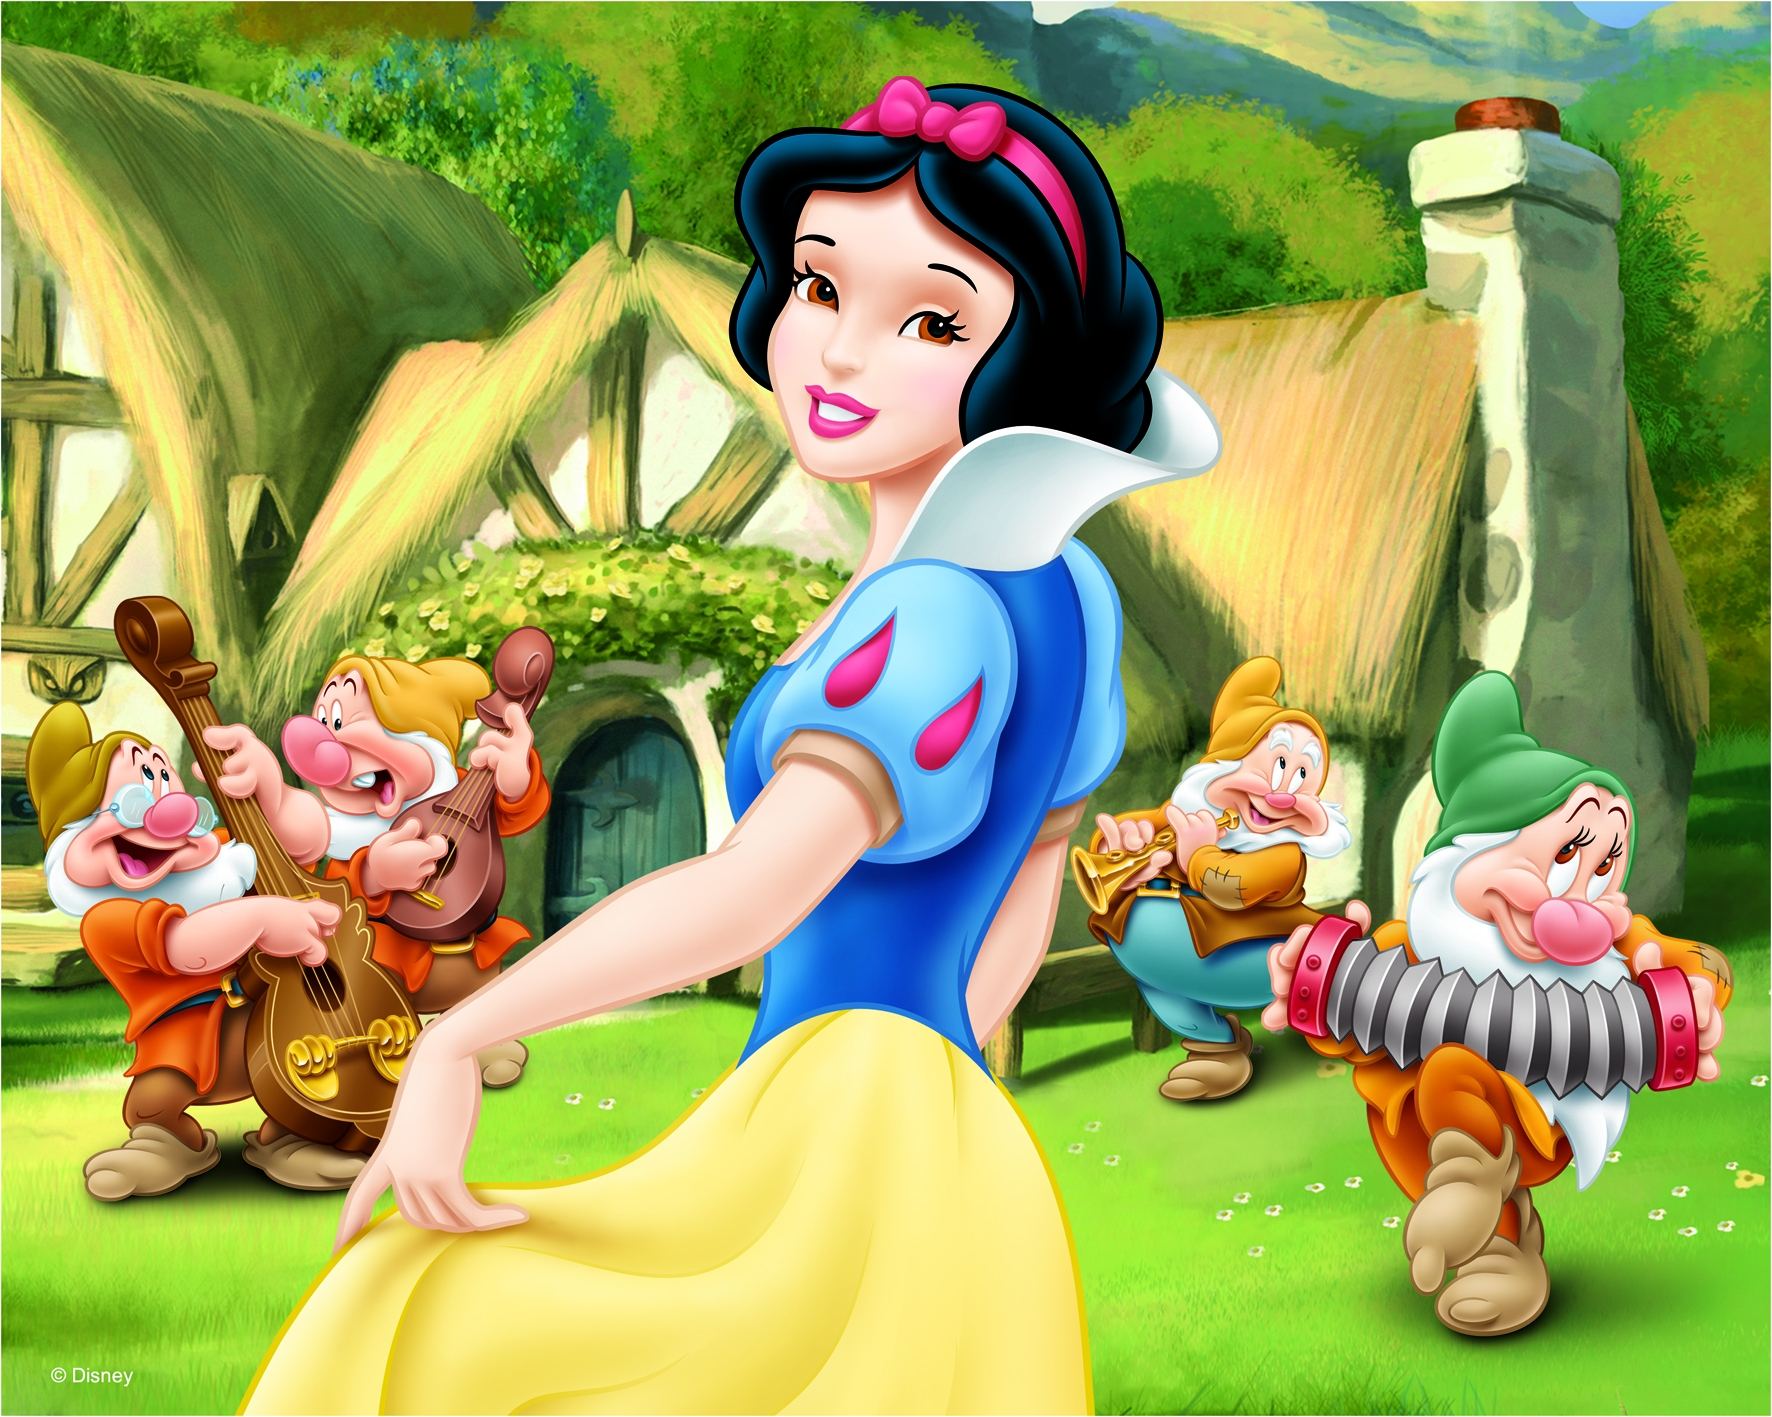 HQ Snow White And The Seven Dwarfs Wallpapers | File 1405.22Kb